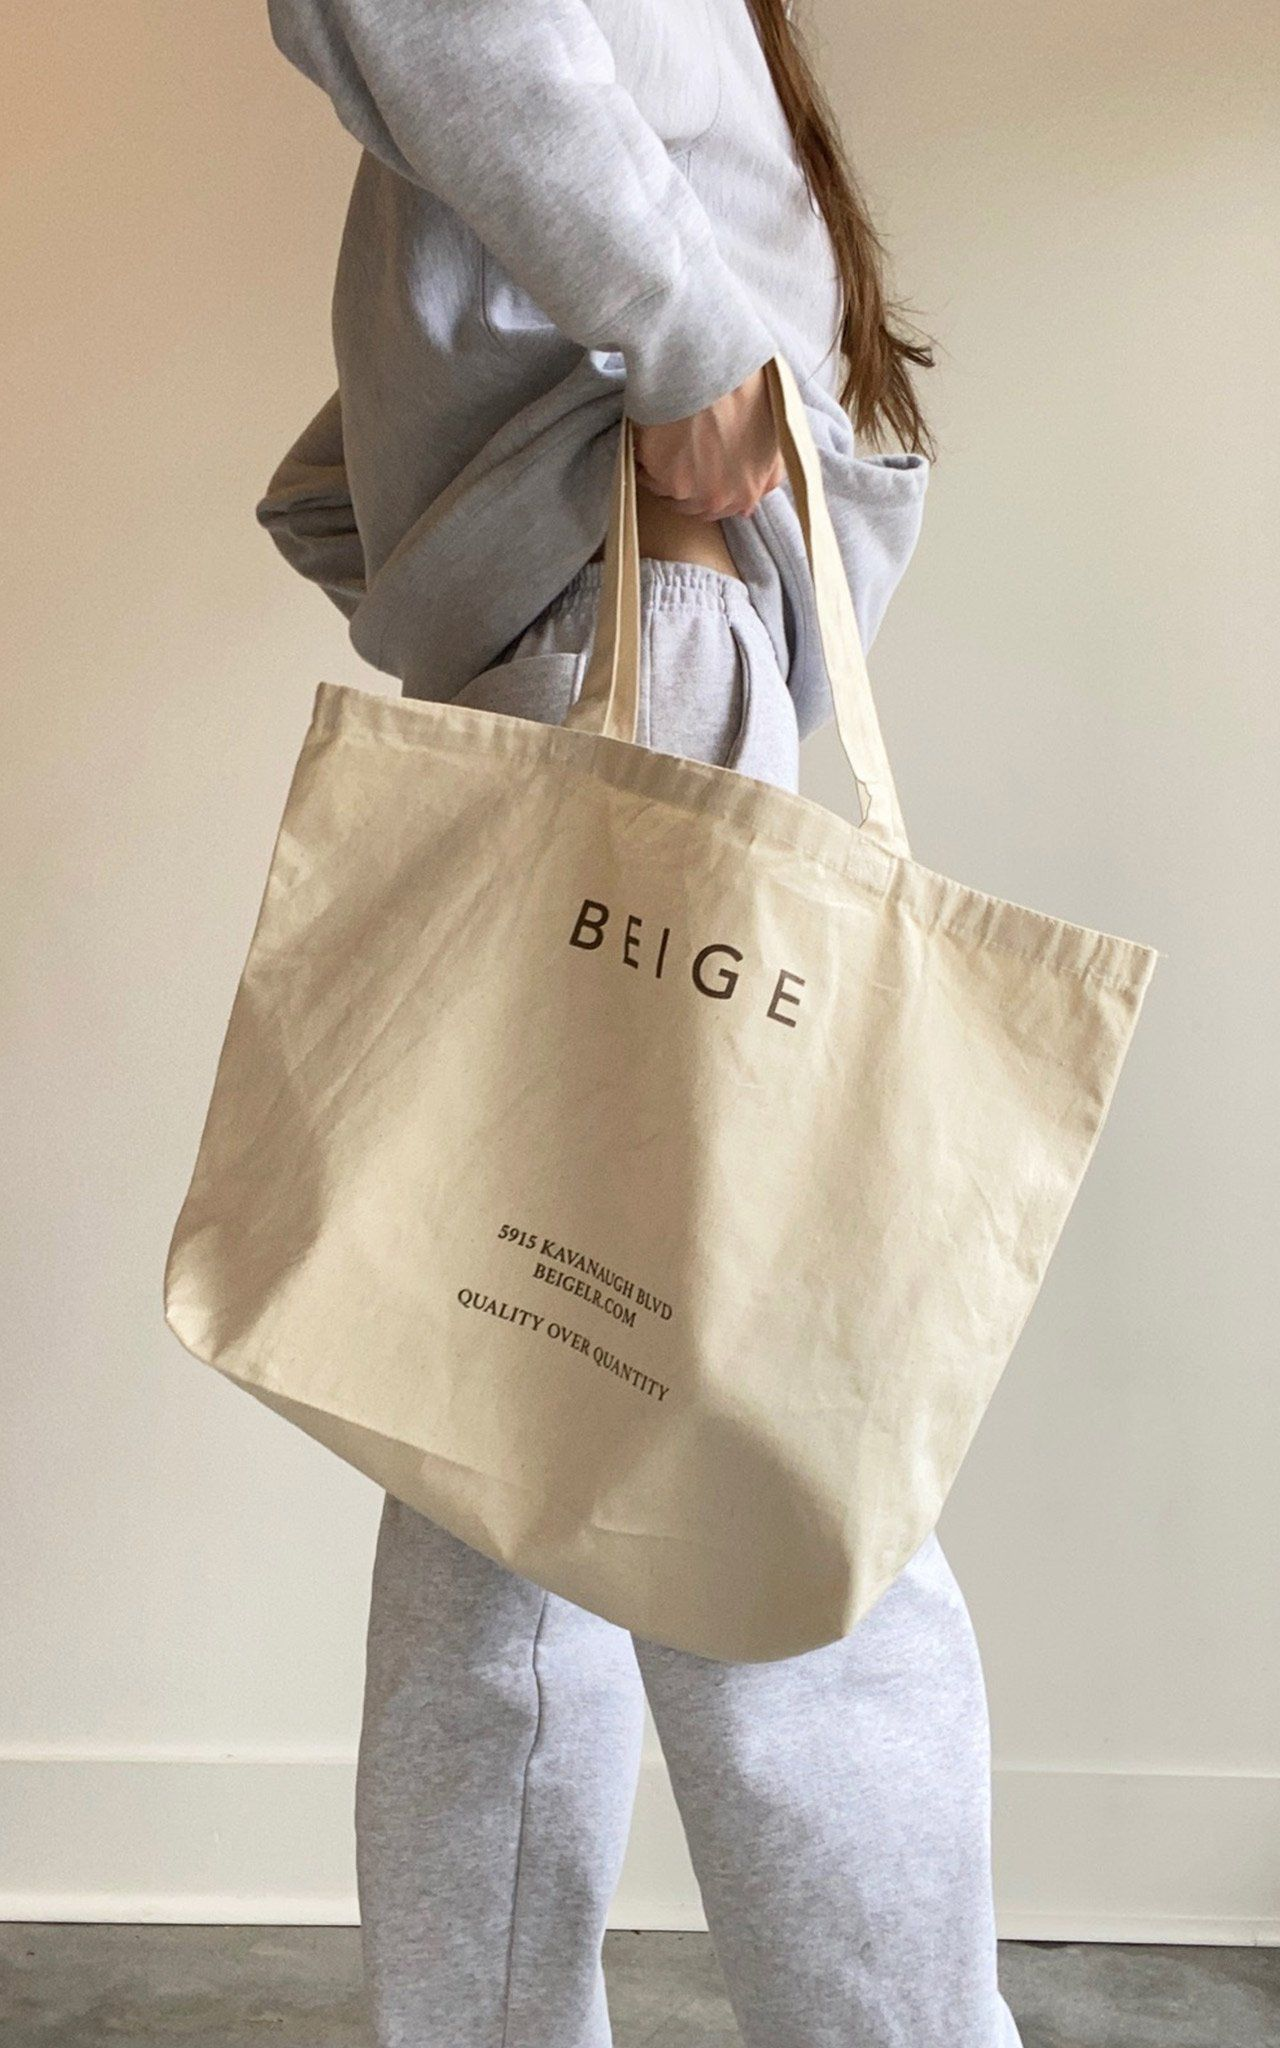 BEIGE LIMITED EDITION REUSABLE TOTE